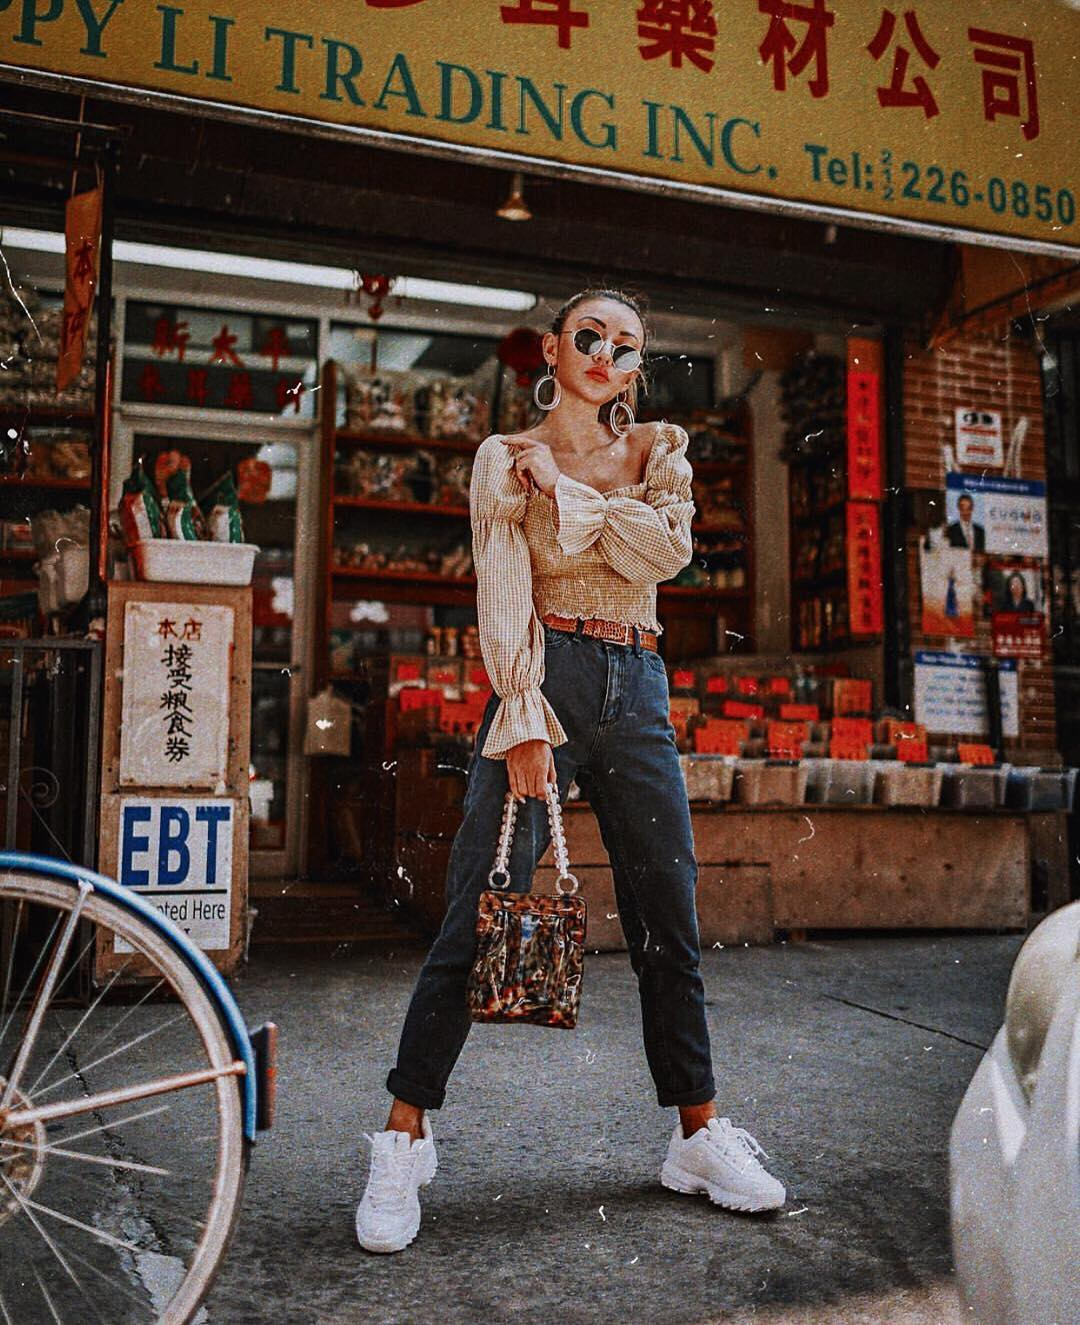 Puff long-sleeved blouse with cuffed jeans and white sneakers for spring 2021